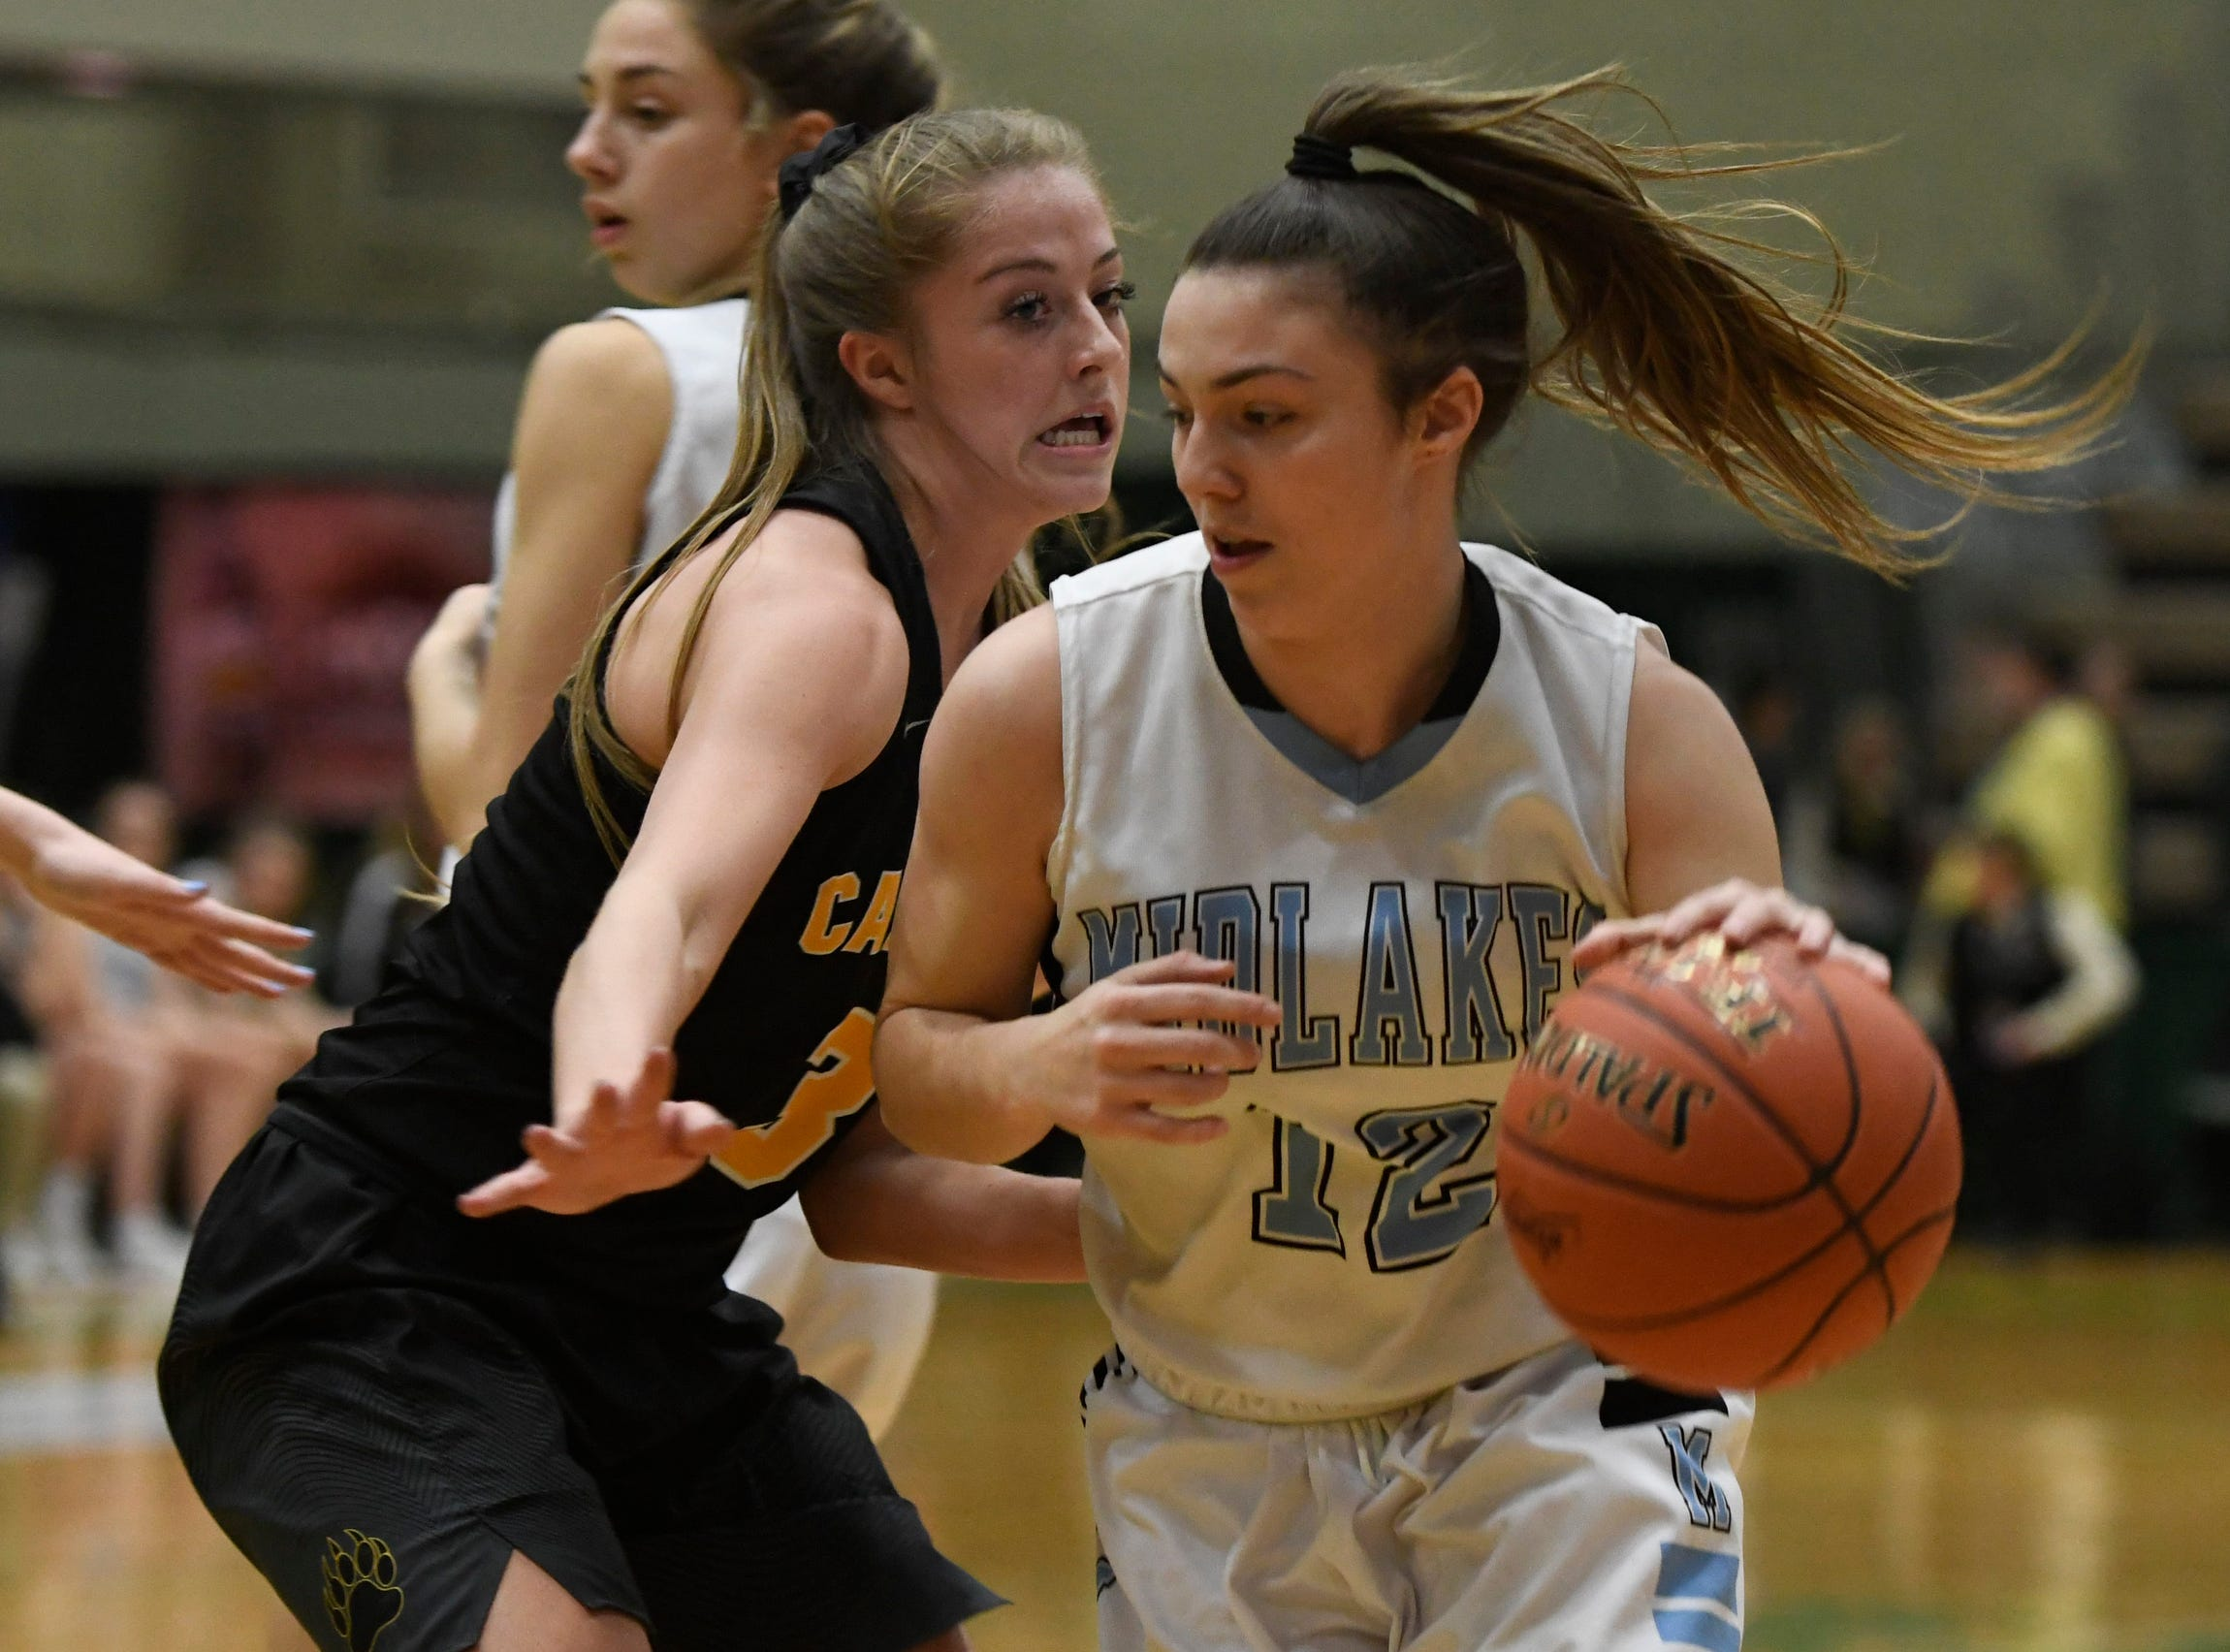 Midlakes's Alaina Forbes dribbles the ball past Canton's Katie Chisholm during their Class B State Semifinal at Hudson Valley Community College in Troy, N.Y. on Friday, Mar. 15, 2019.